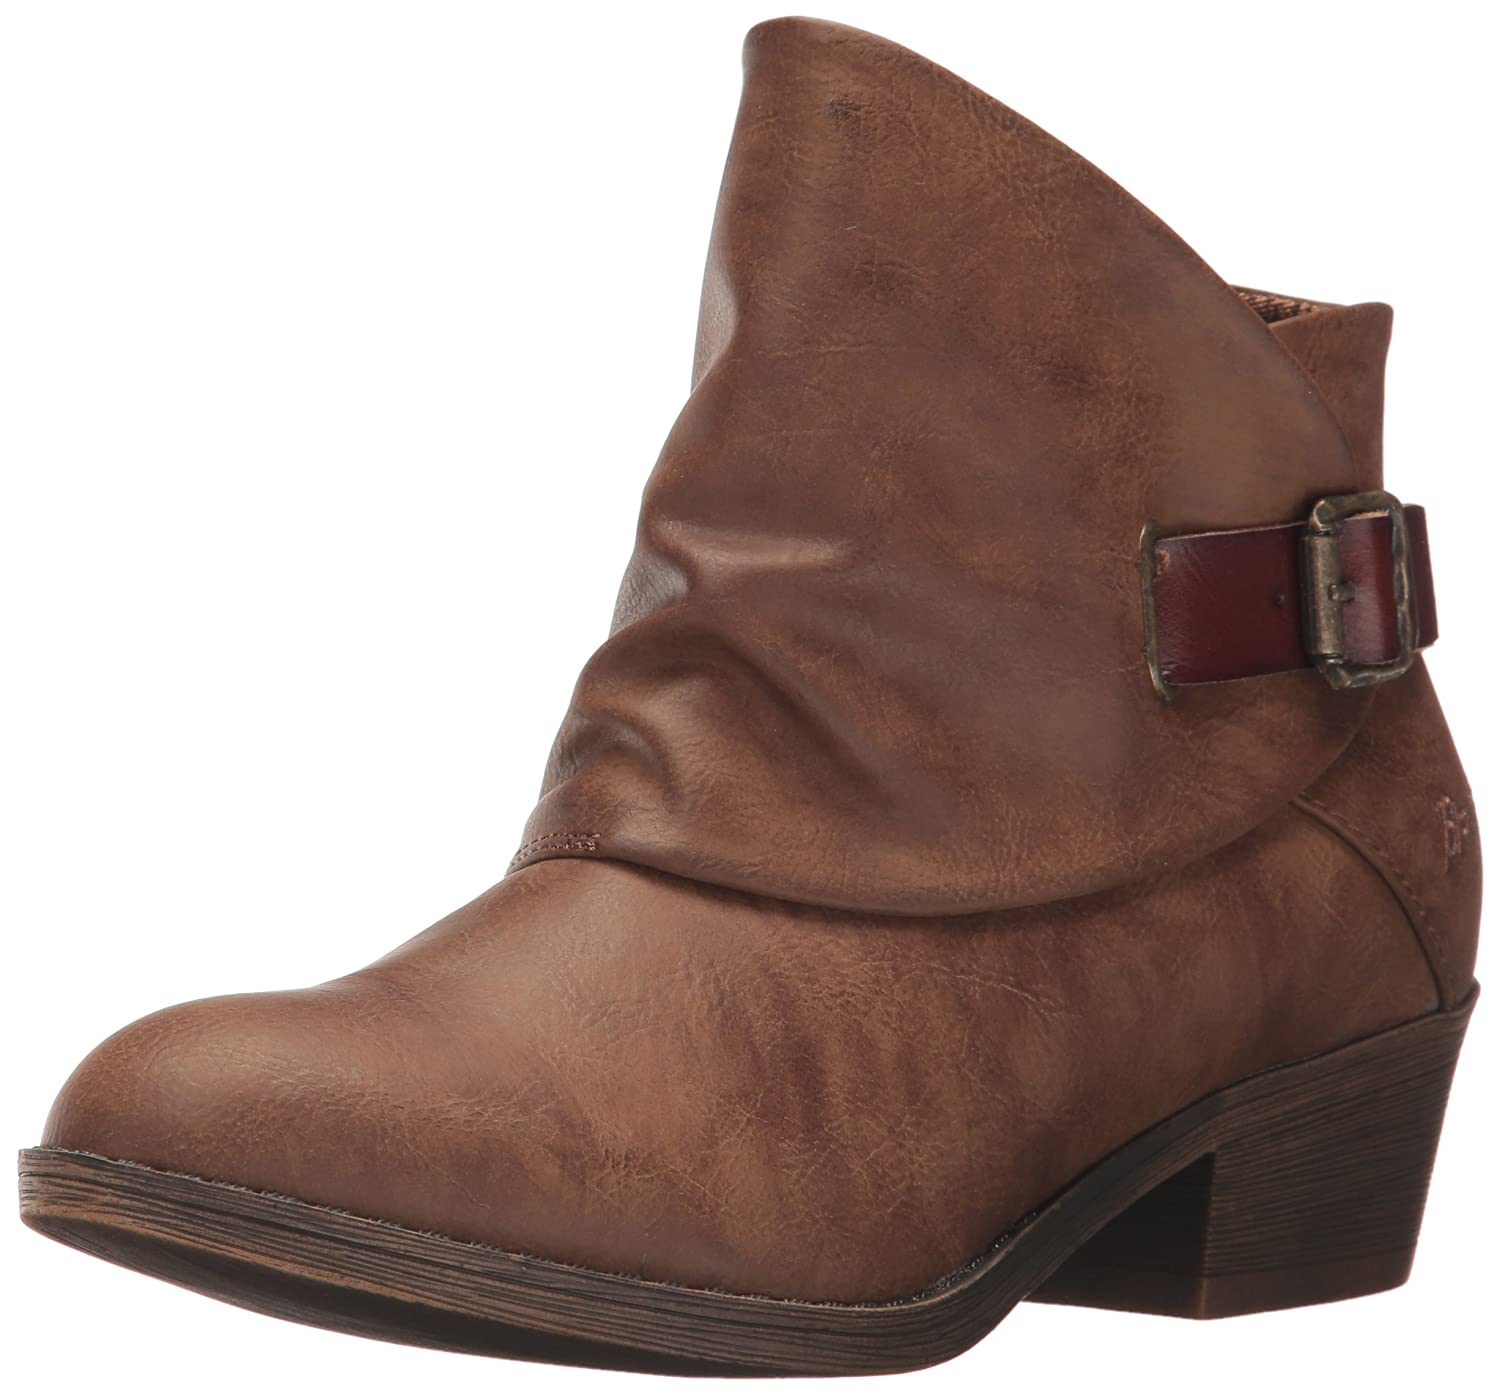 Blowfish Sill Damen Rund Synthetik Kurzstiefel